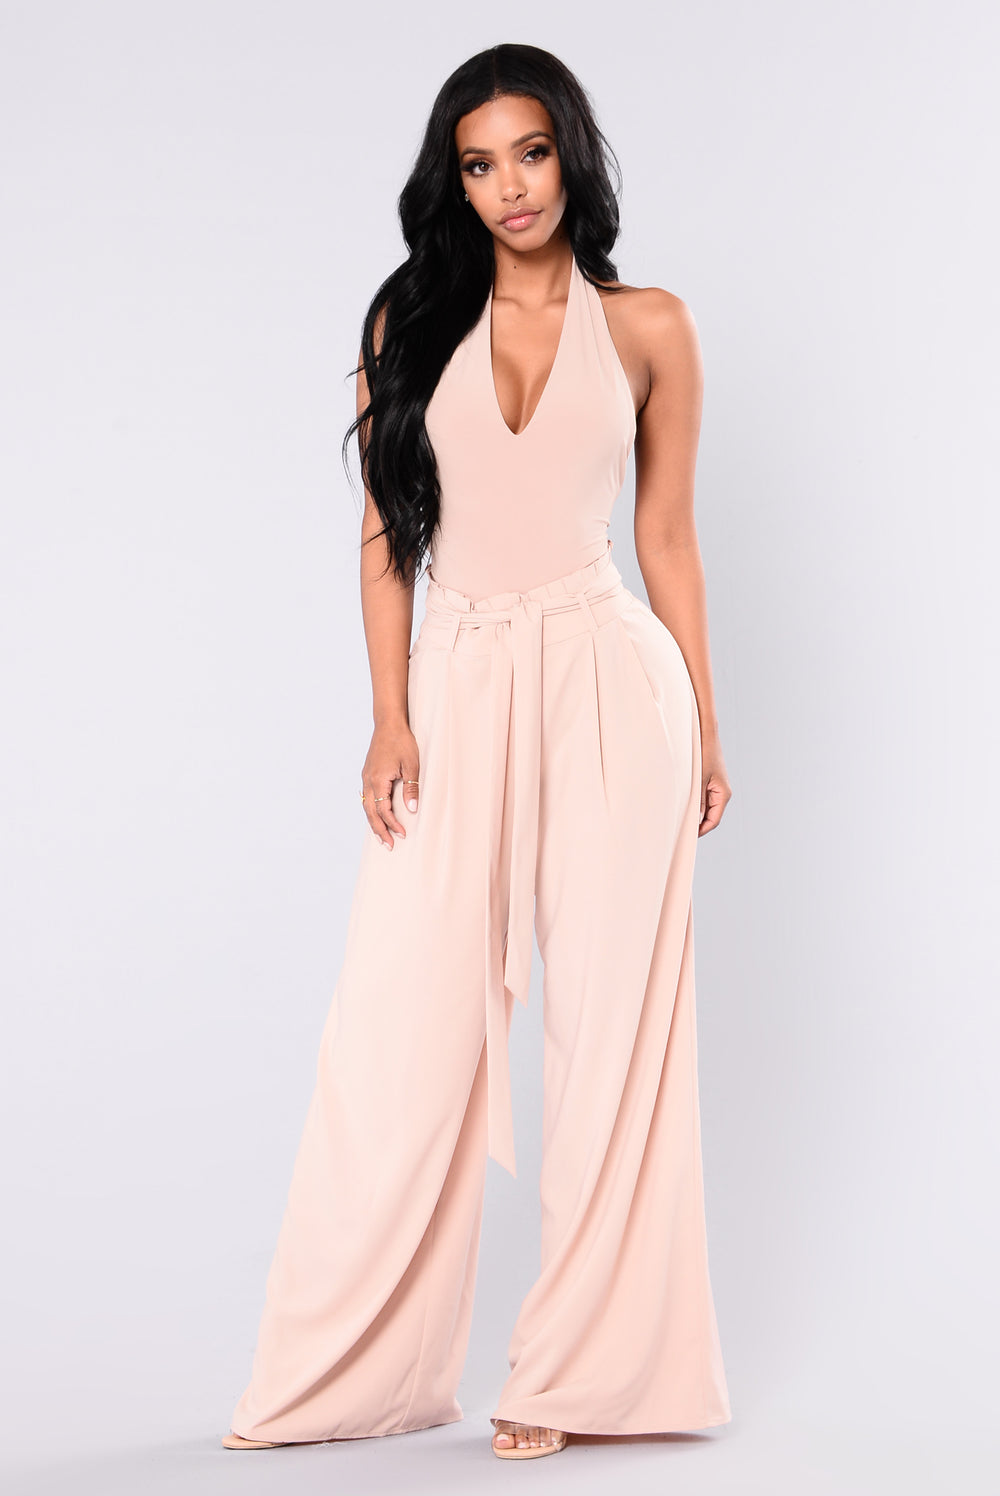 Carly Shay Waist Tie Pants Nude